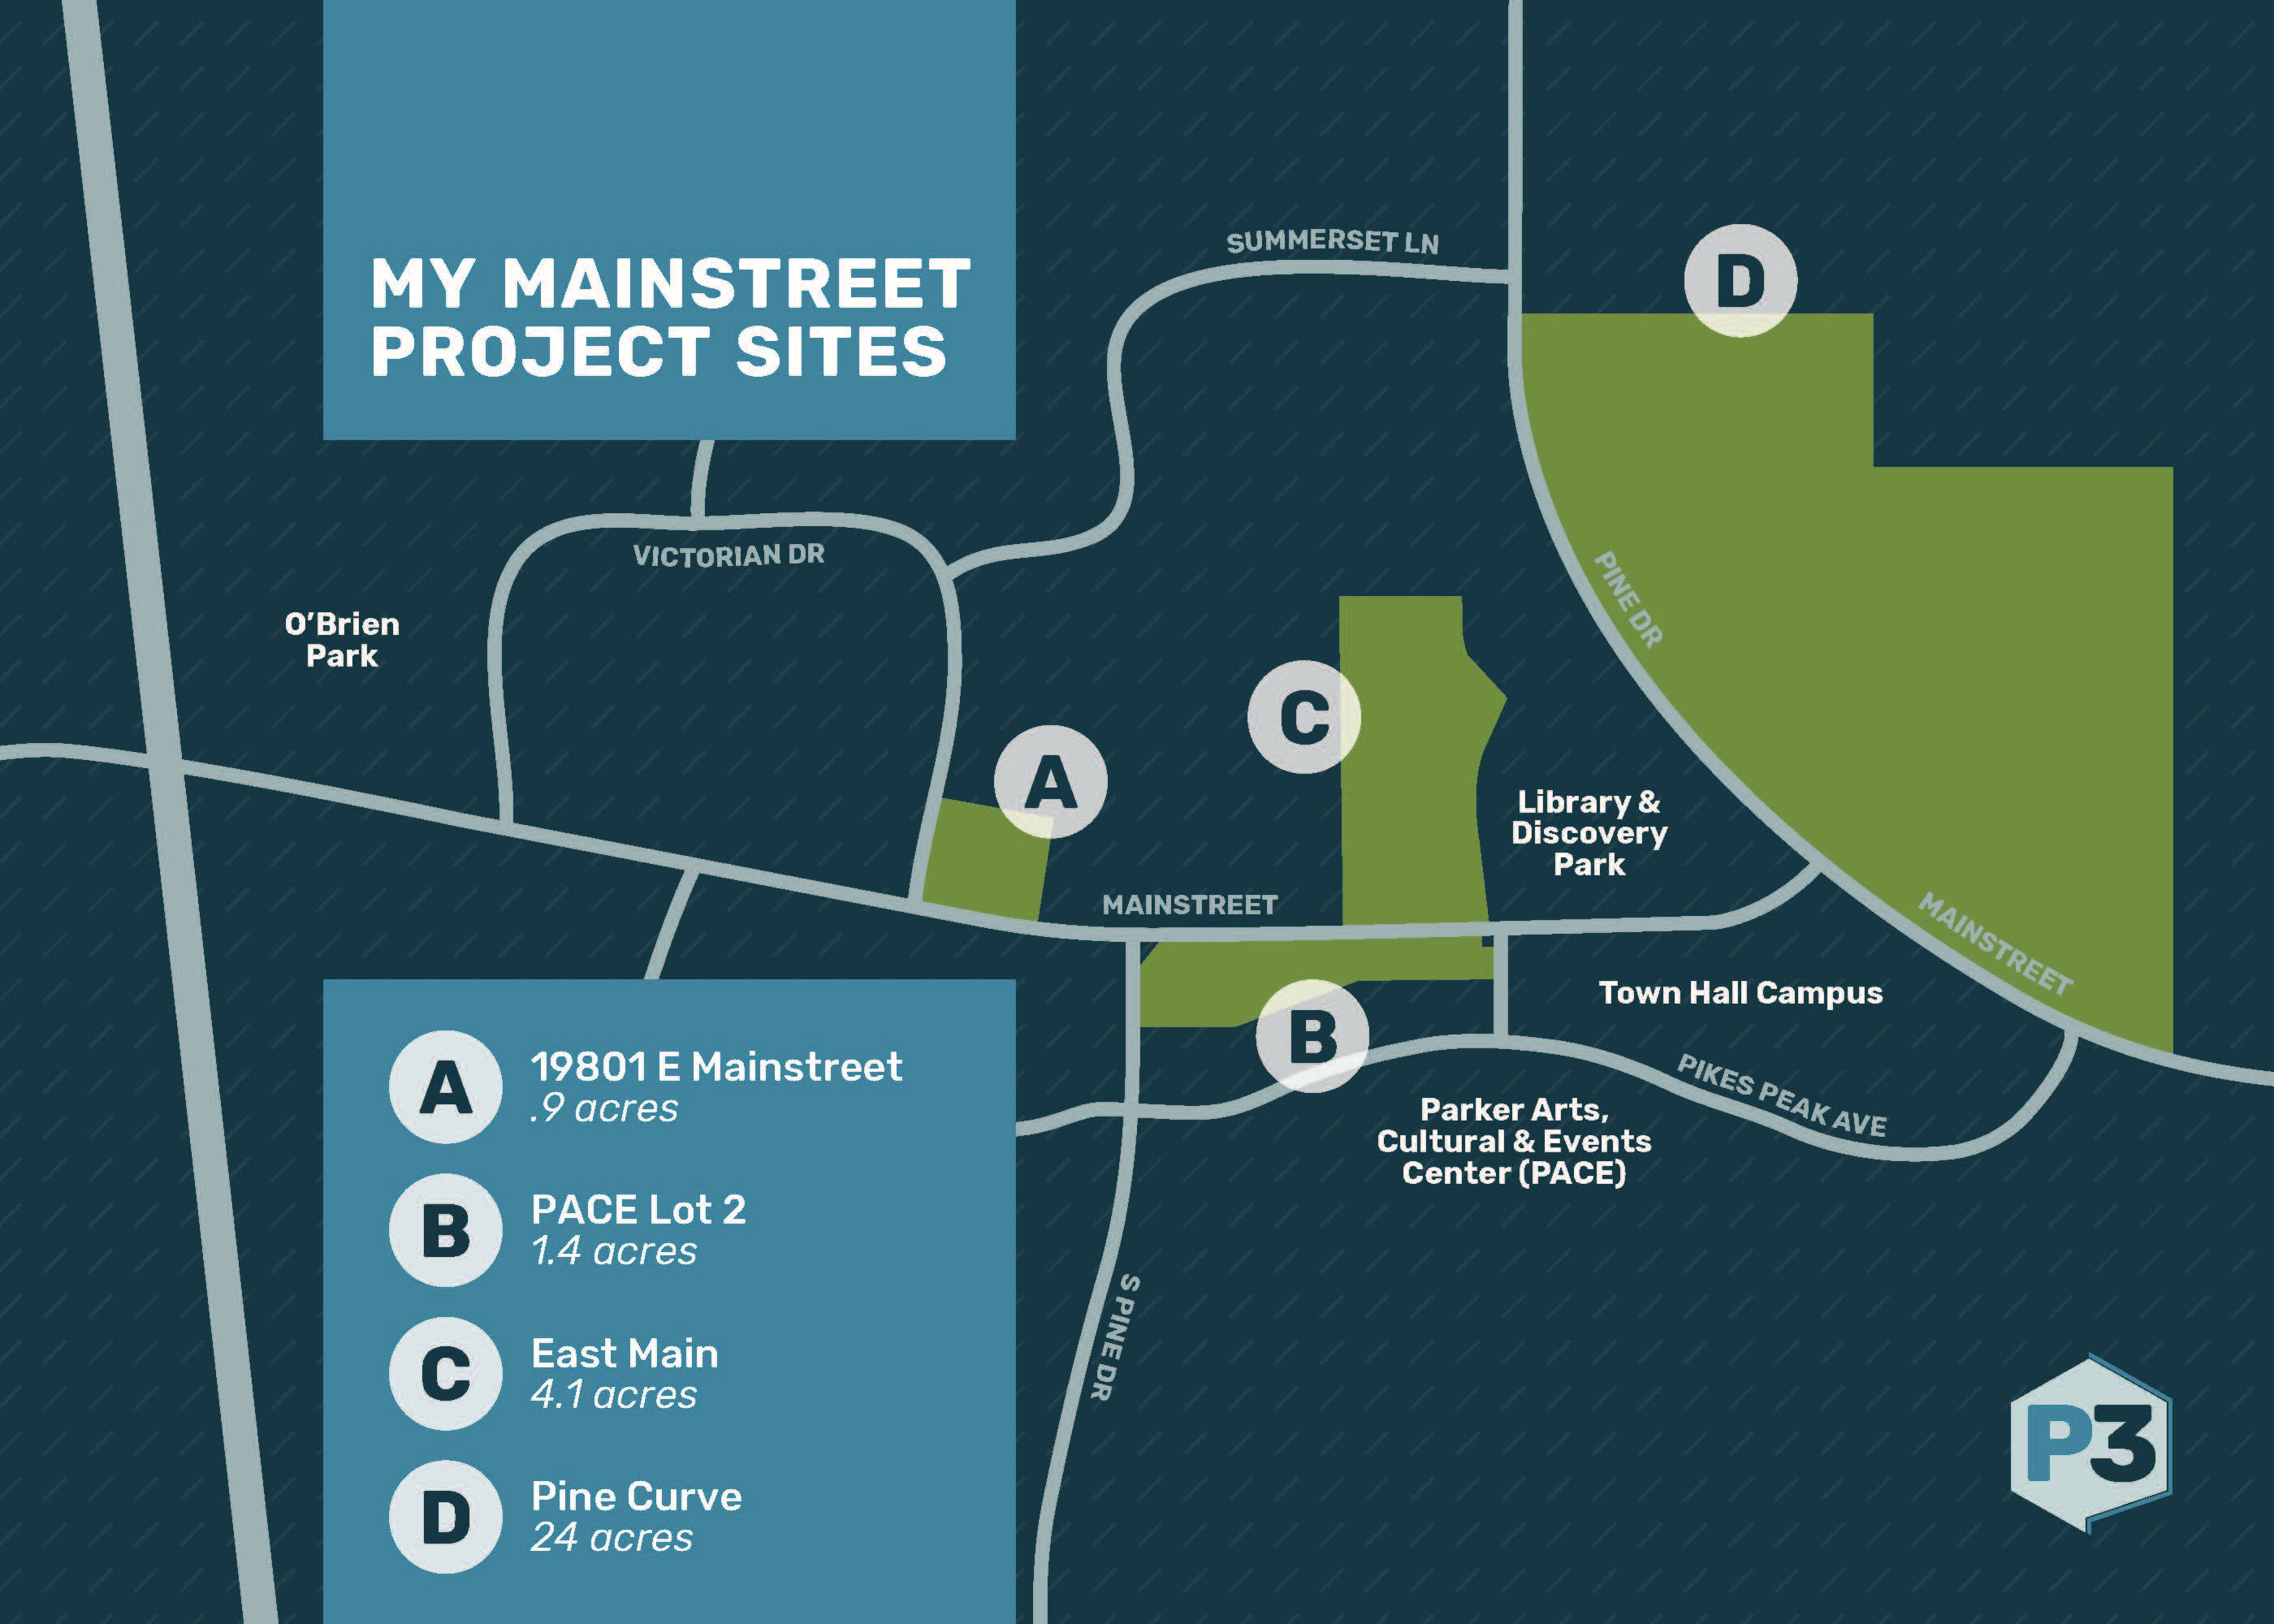 2018 02 p3 mymainstreet map